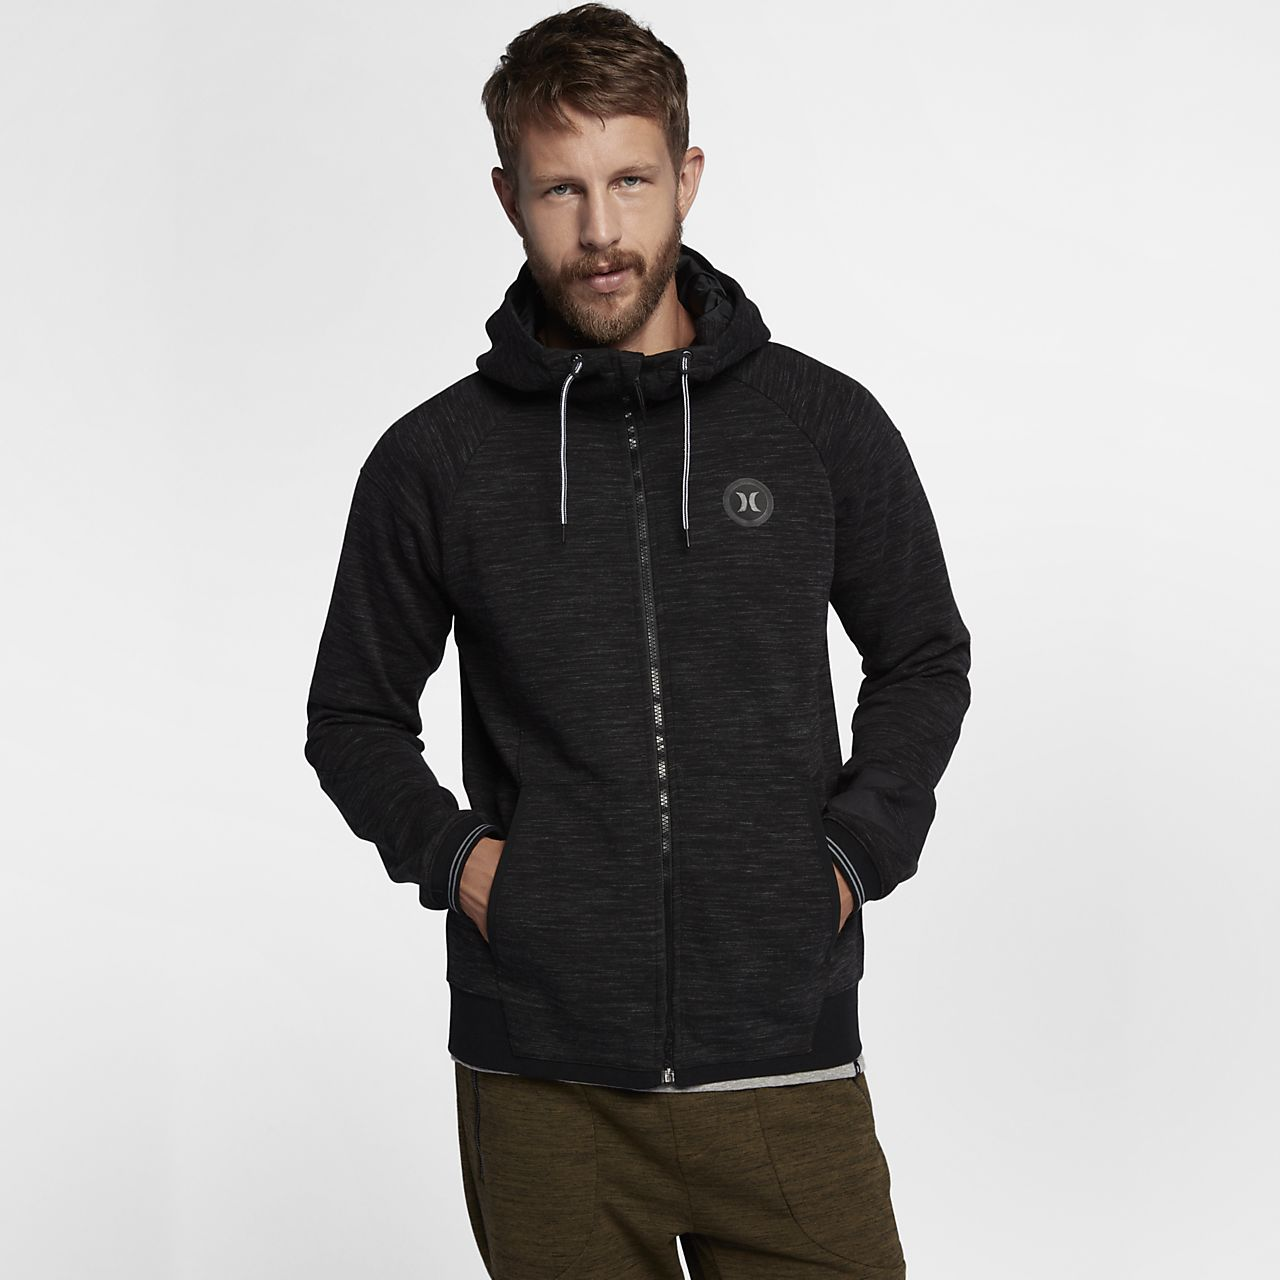 9645fa5afbd Hurley Phantom Motion Zip Up Men s Fleece Hoodie. Nike.com BG